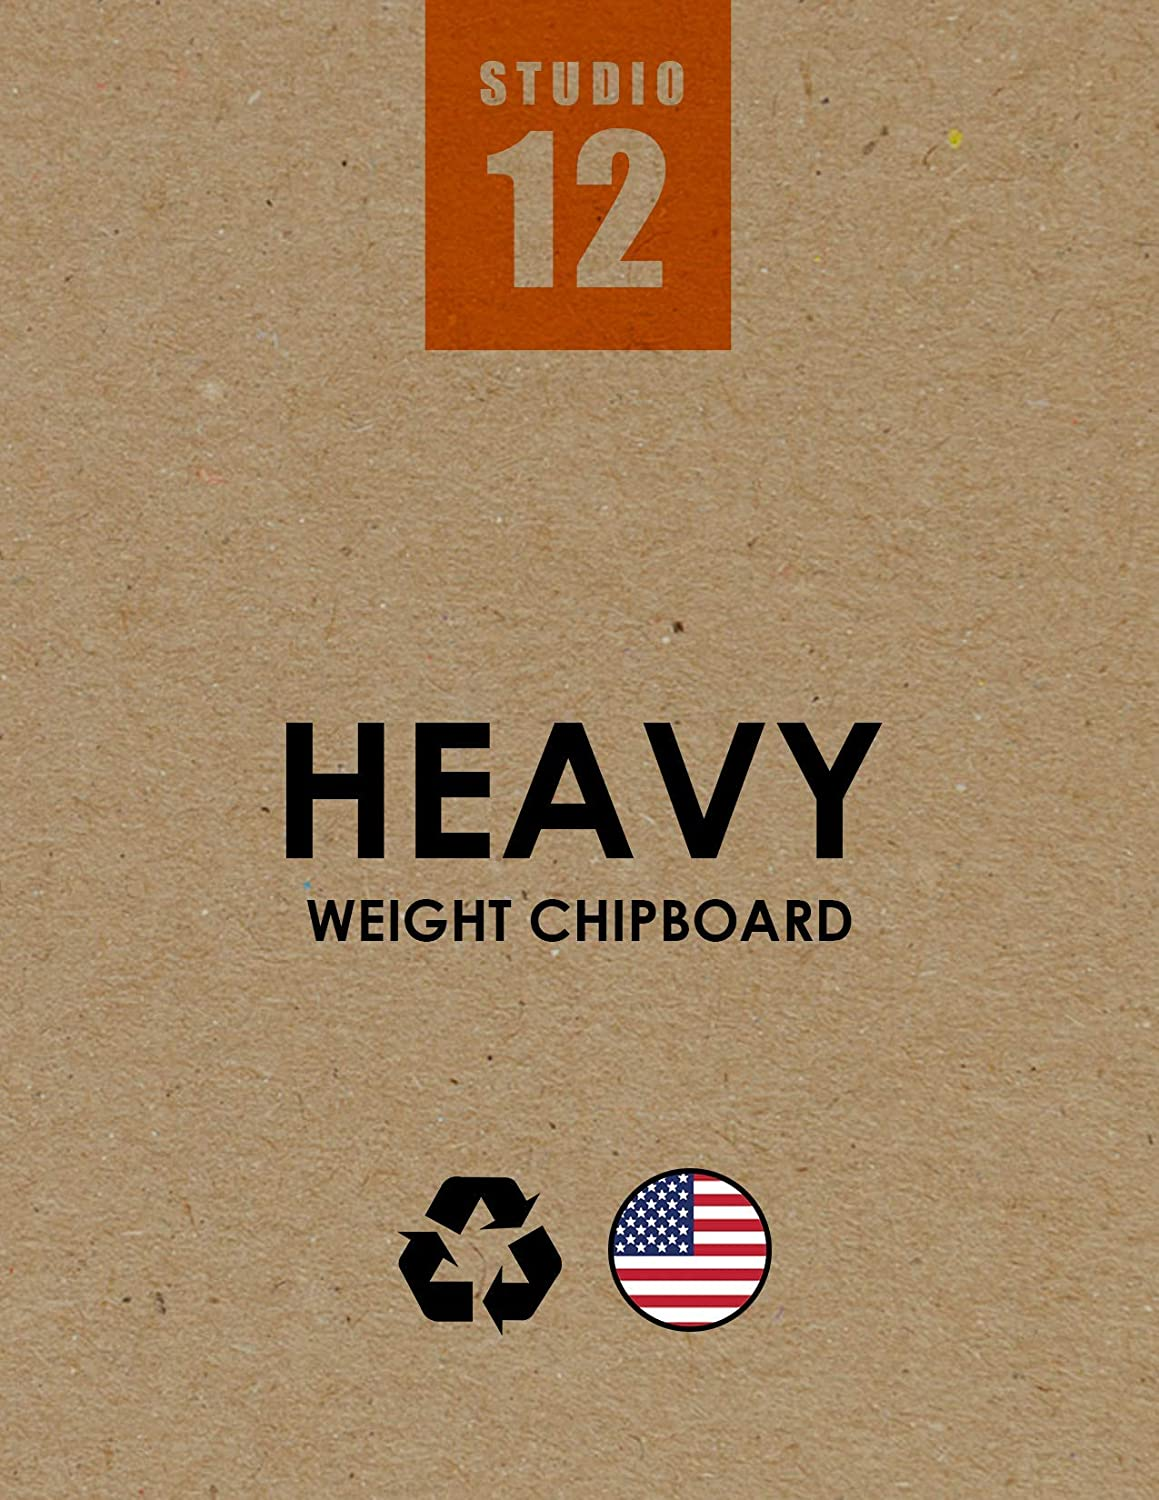 Heavy Weight Natural Kraft Brown 25 Sheets Studio 12 Chipboard Sheets Great for Model Building 11 x 17 Creative Projects and Protecting Valuable Photos and documents. Scrap Booking